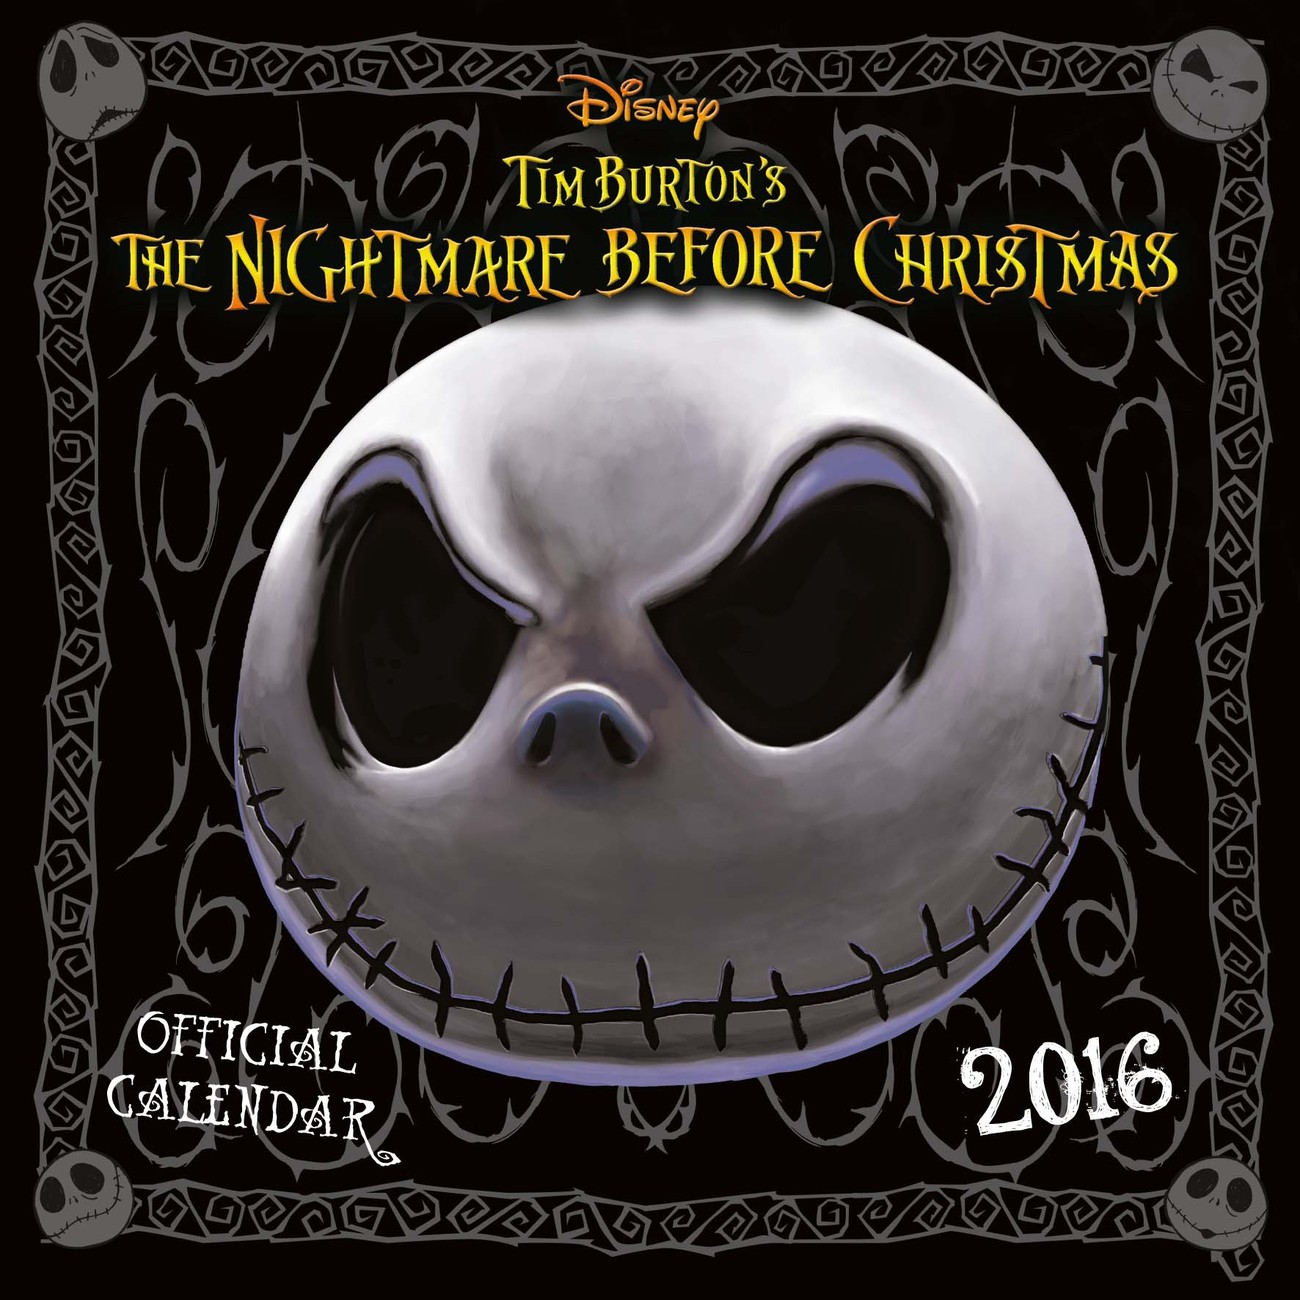 The Nightmare Before Christmas - Calendars 2019 on UKposters ...